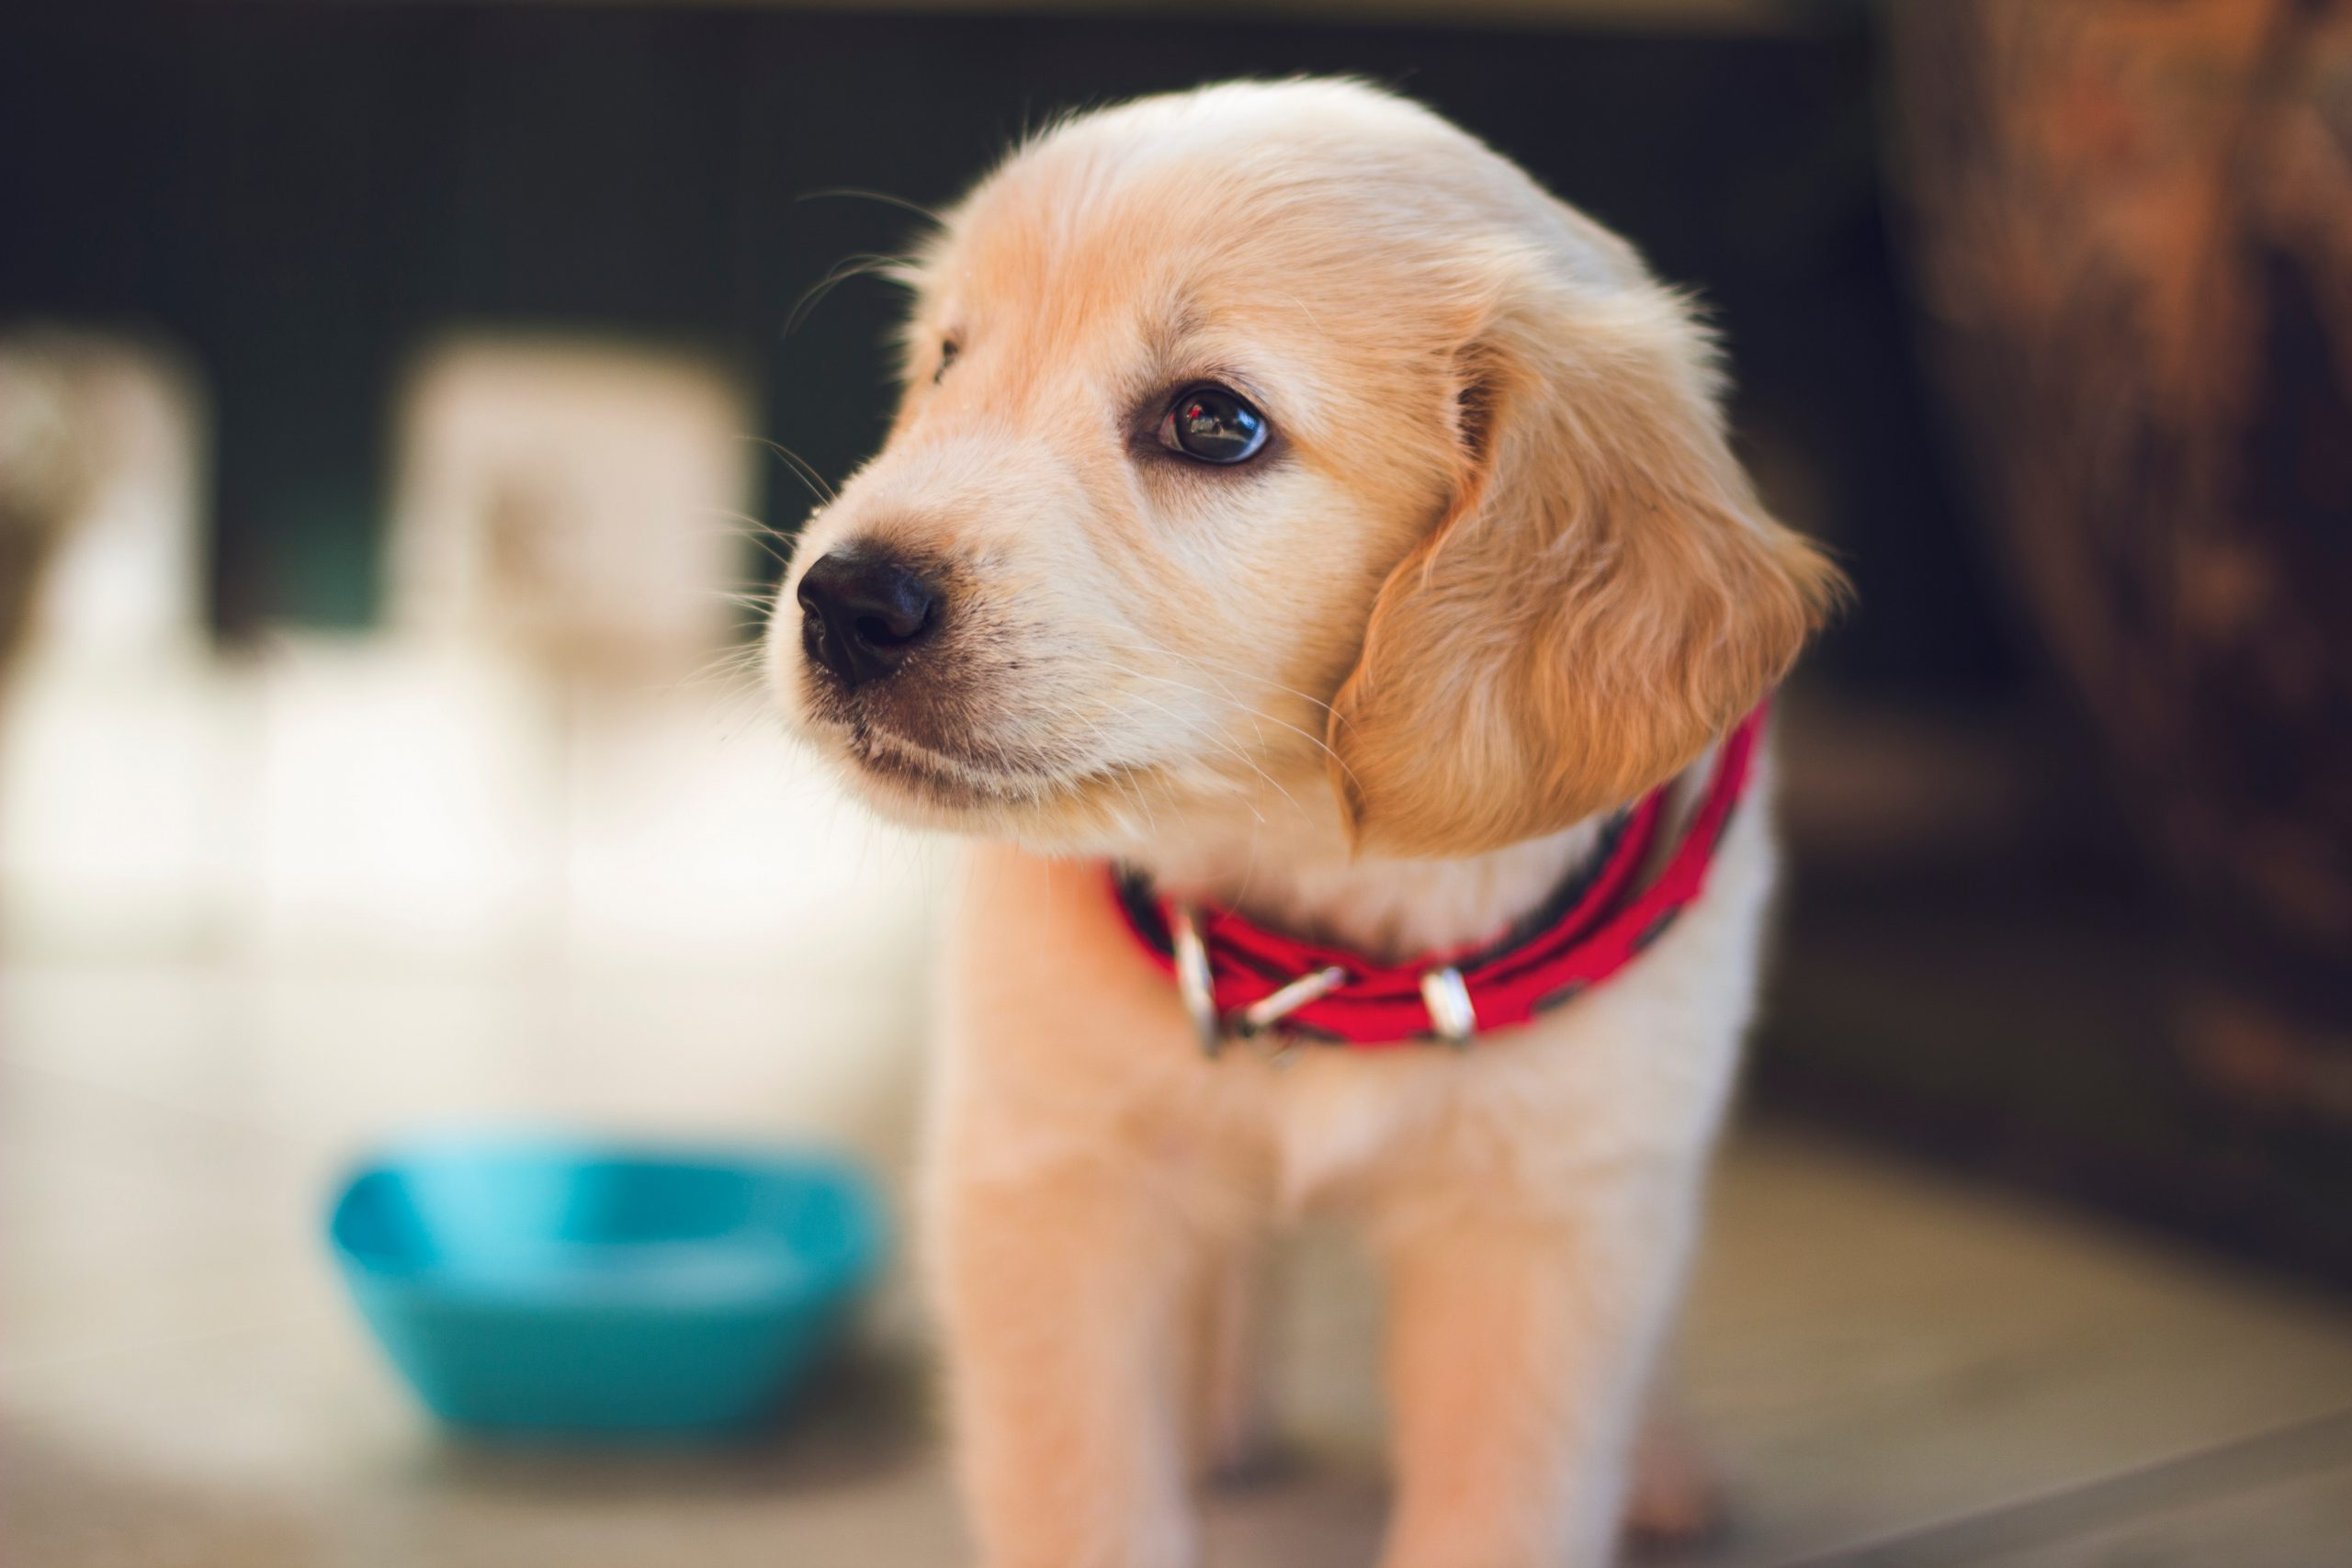 A picture of a puppy Golden Retriever